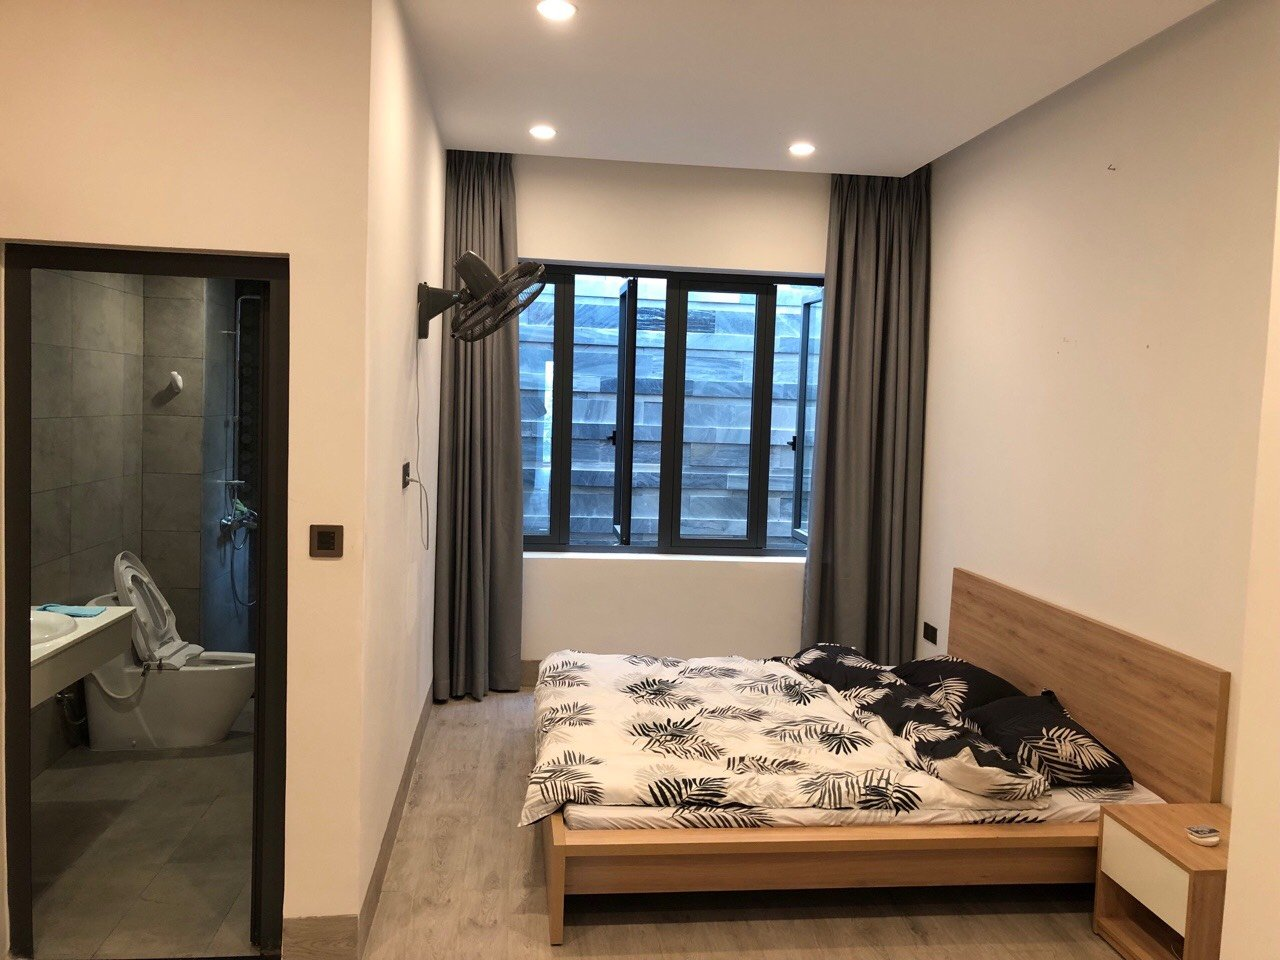 3 Bedroom House For Rent In Son Tra Da Nang